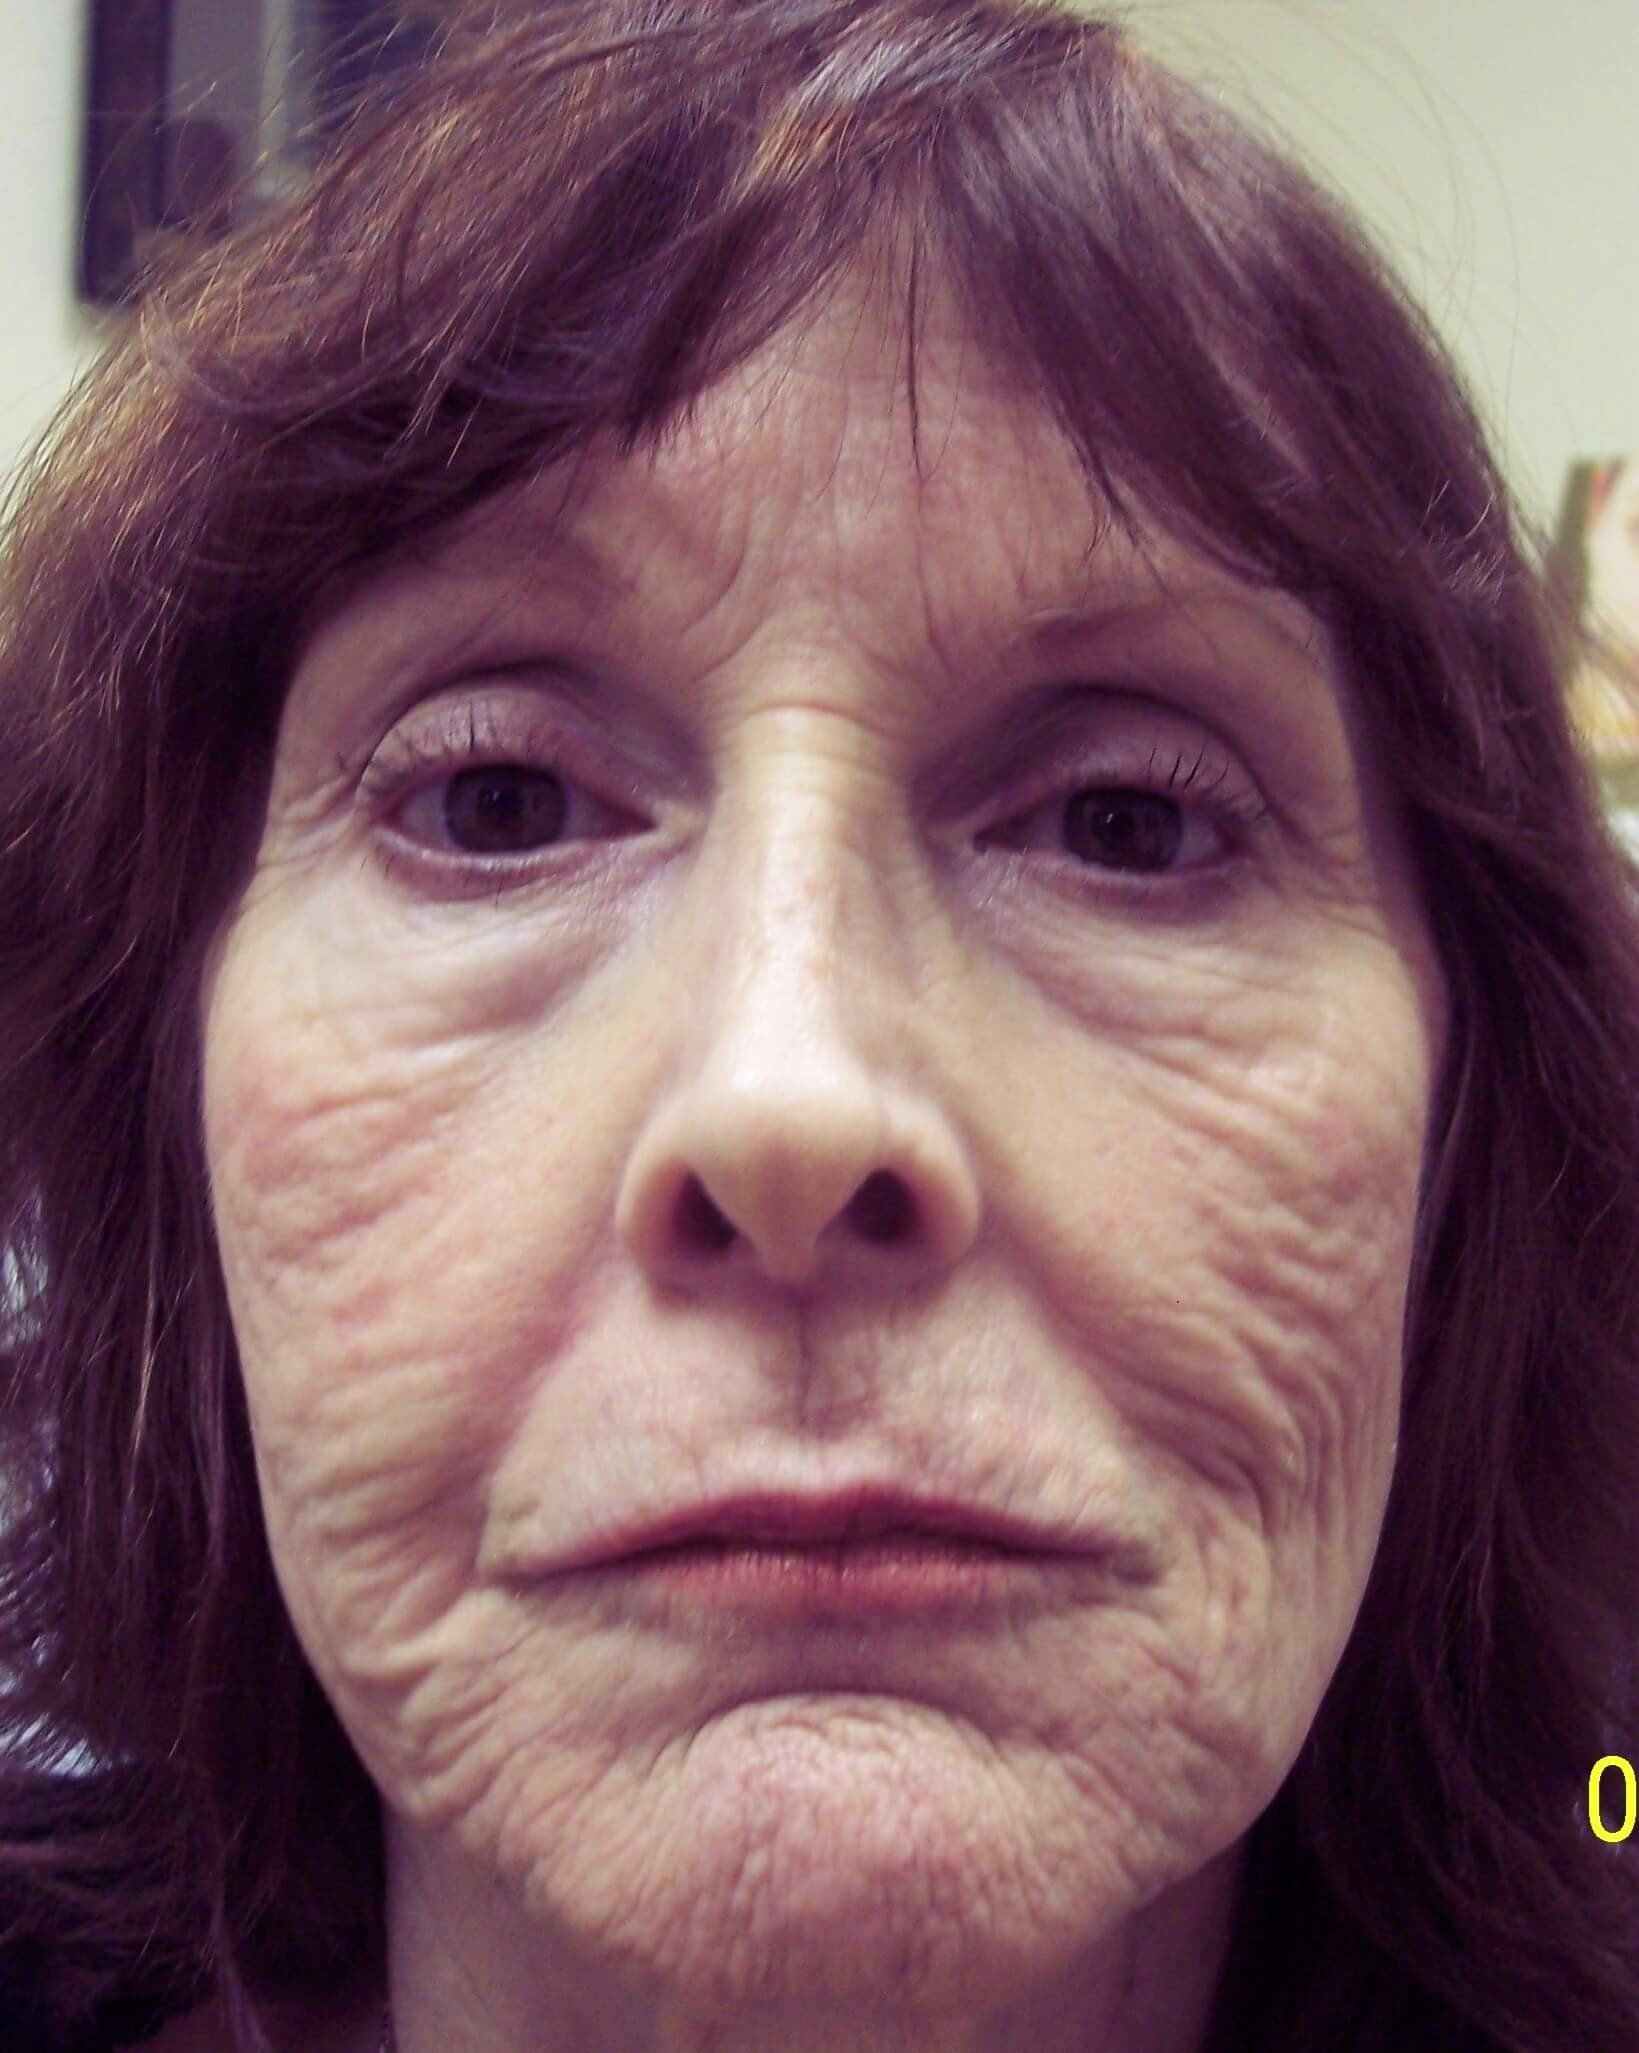 Juvederm Replaces Lost Volume Before Dr. Lee